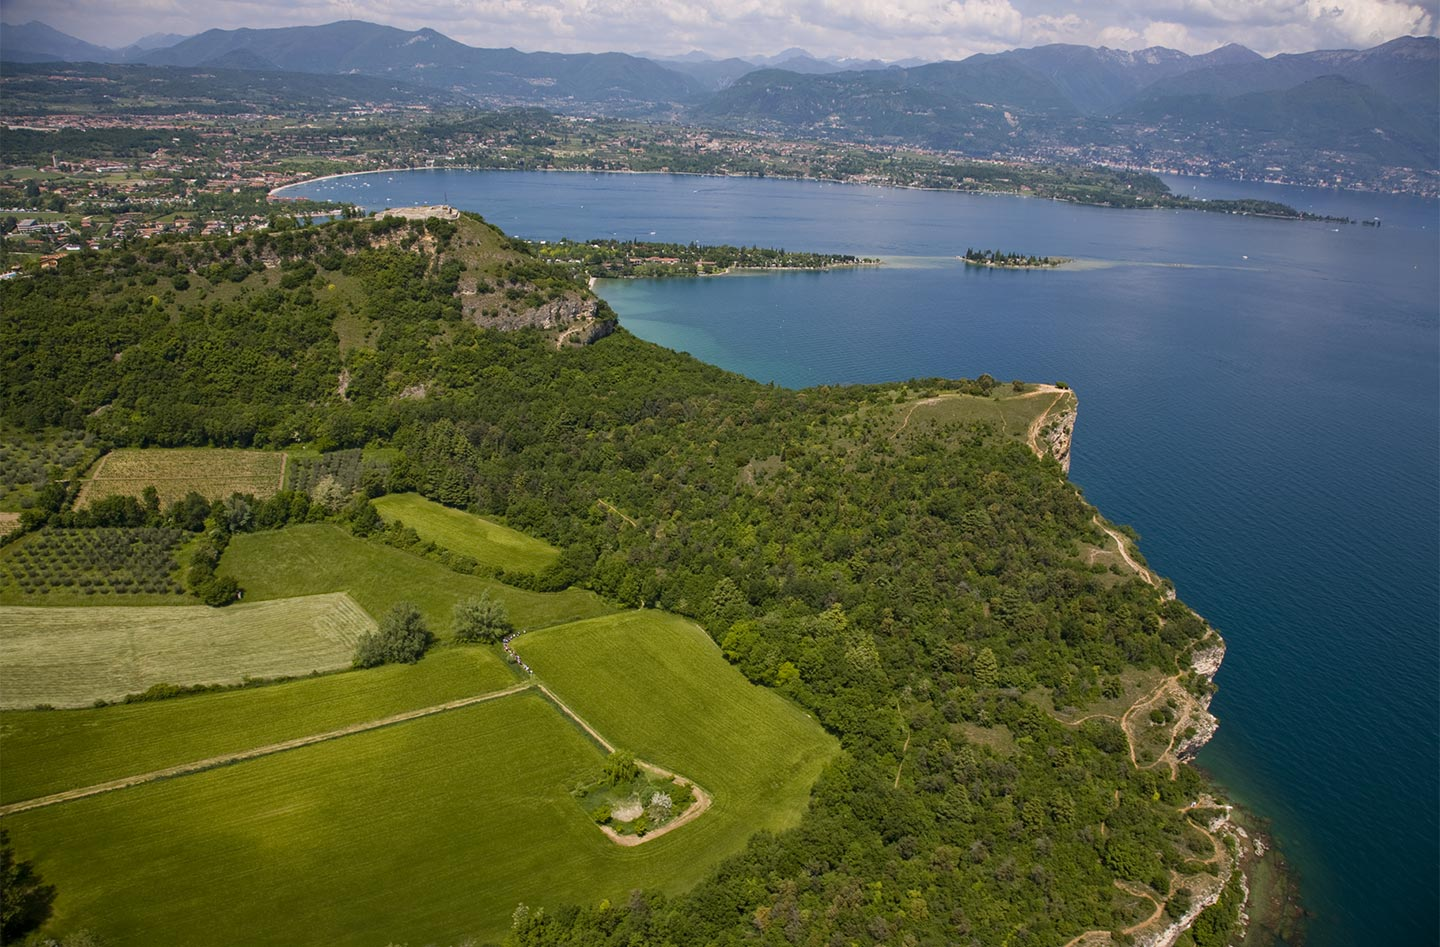 The natural park of la rocca The territory Agriturismo la Filanda on lake Garda Italy